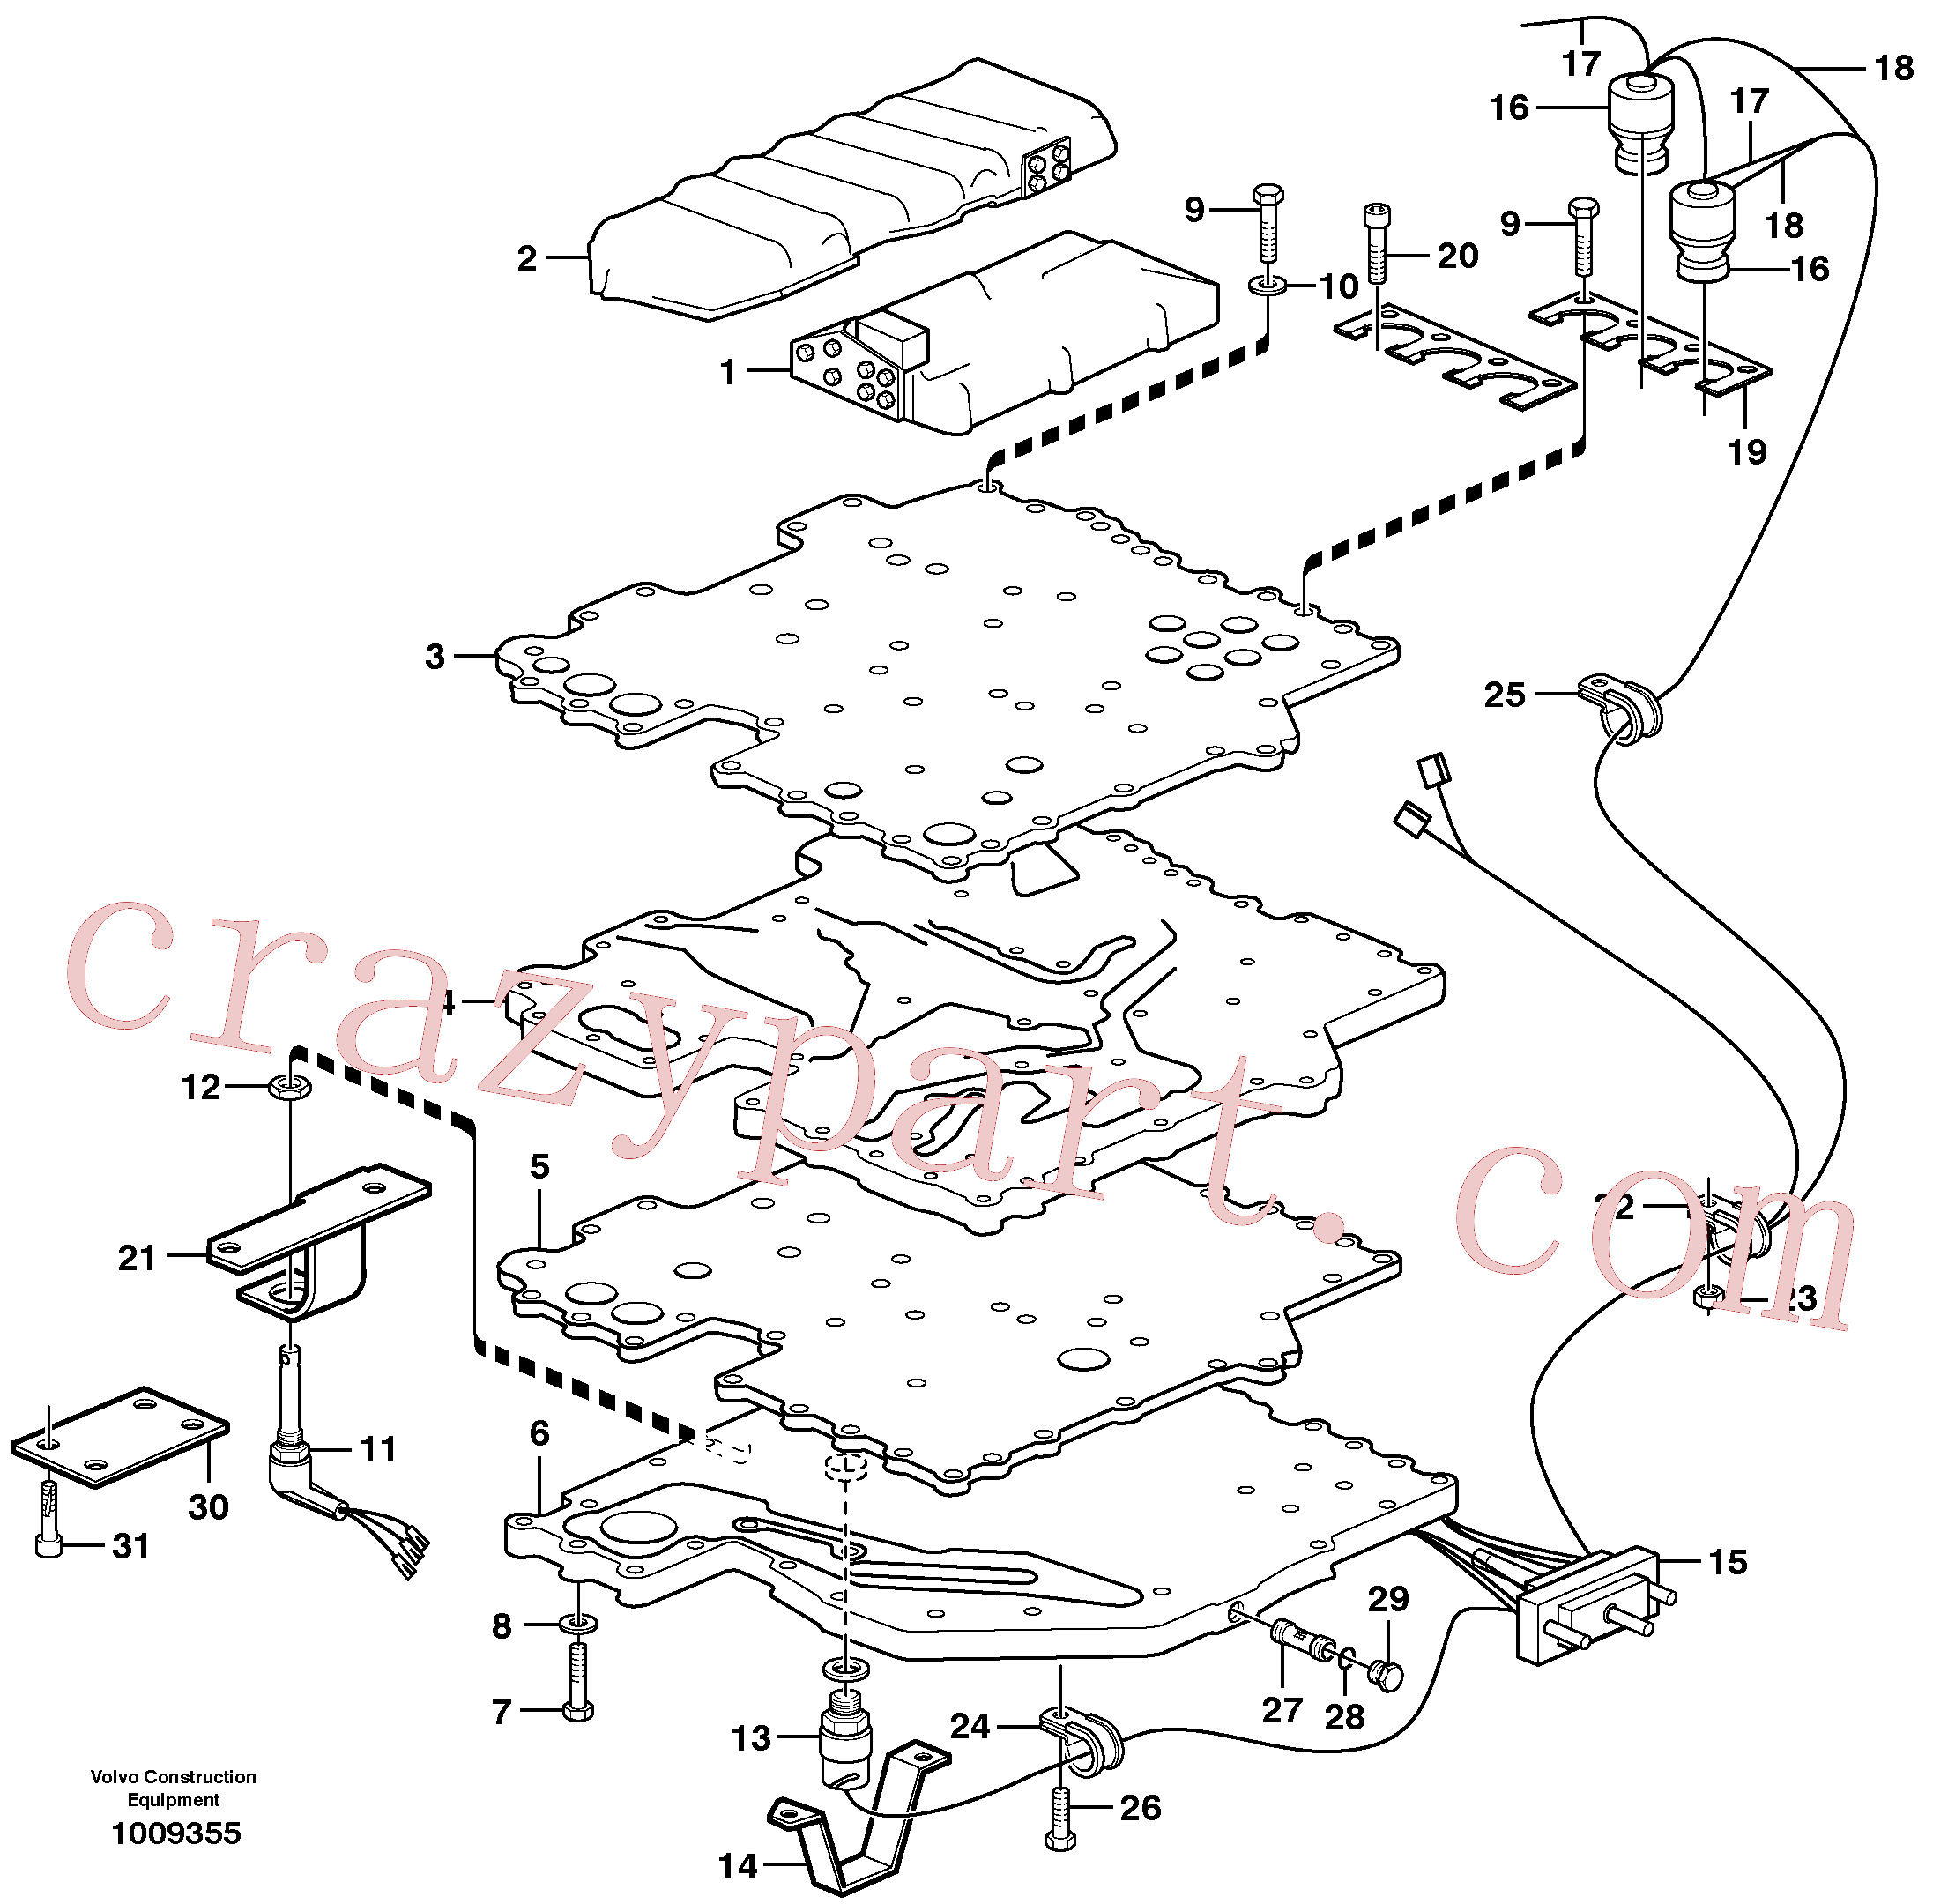 VOE940374 for Volvo Control system(1009355 assembly)